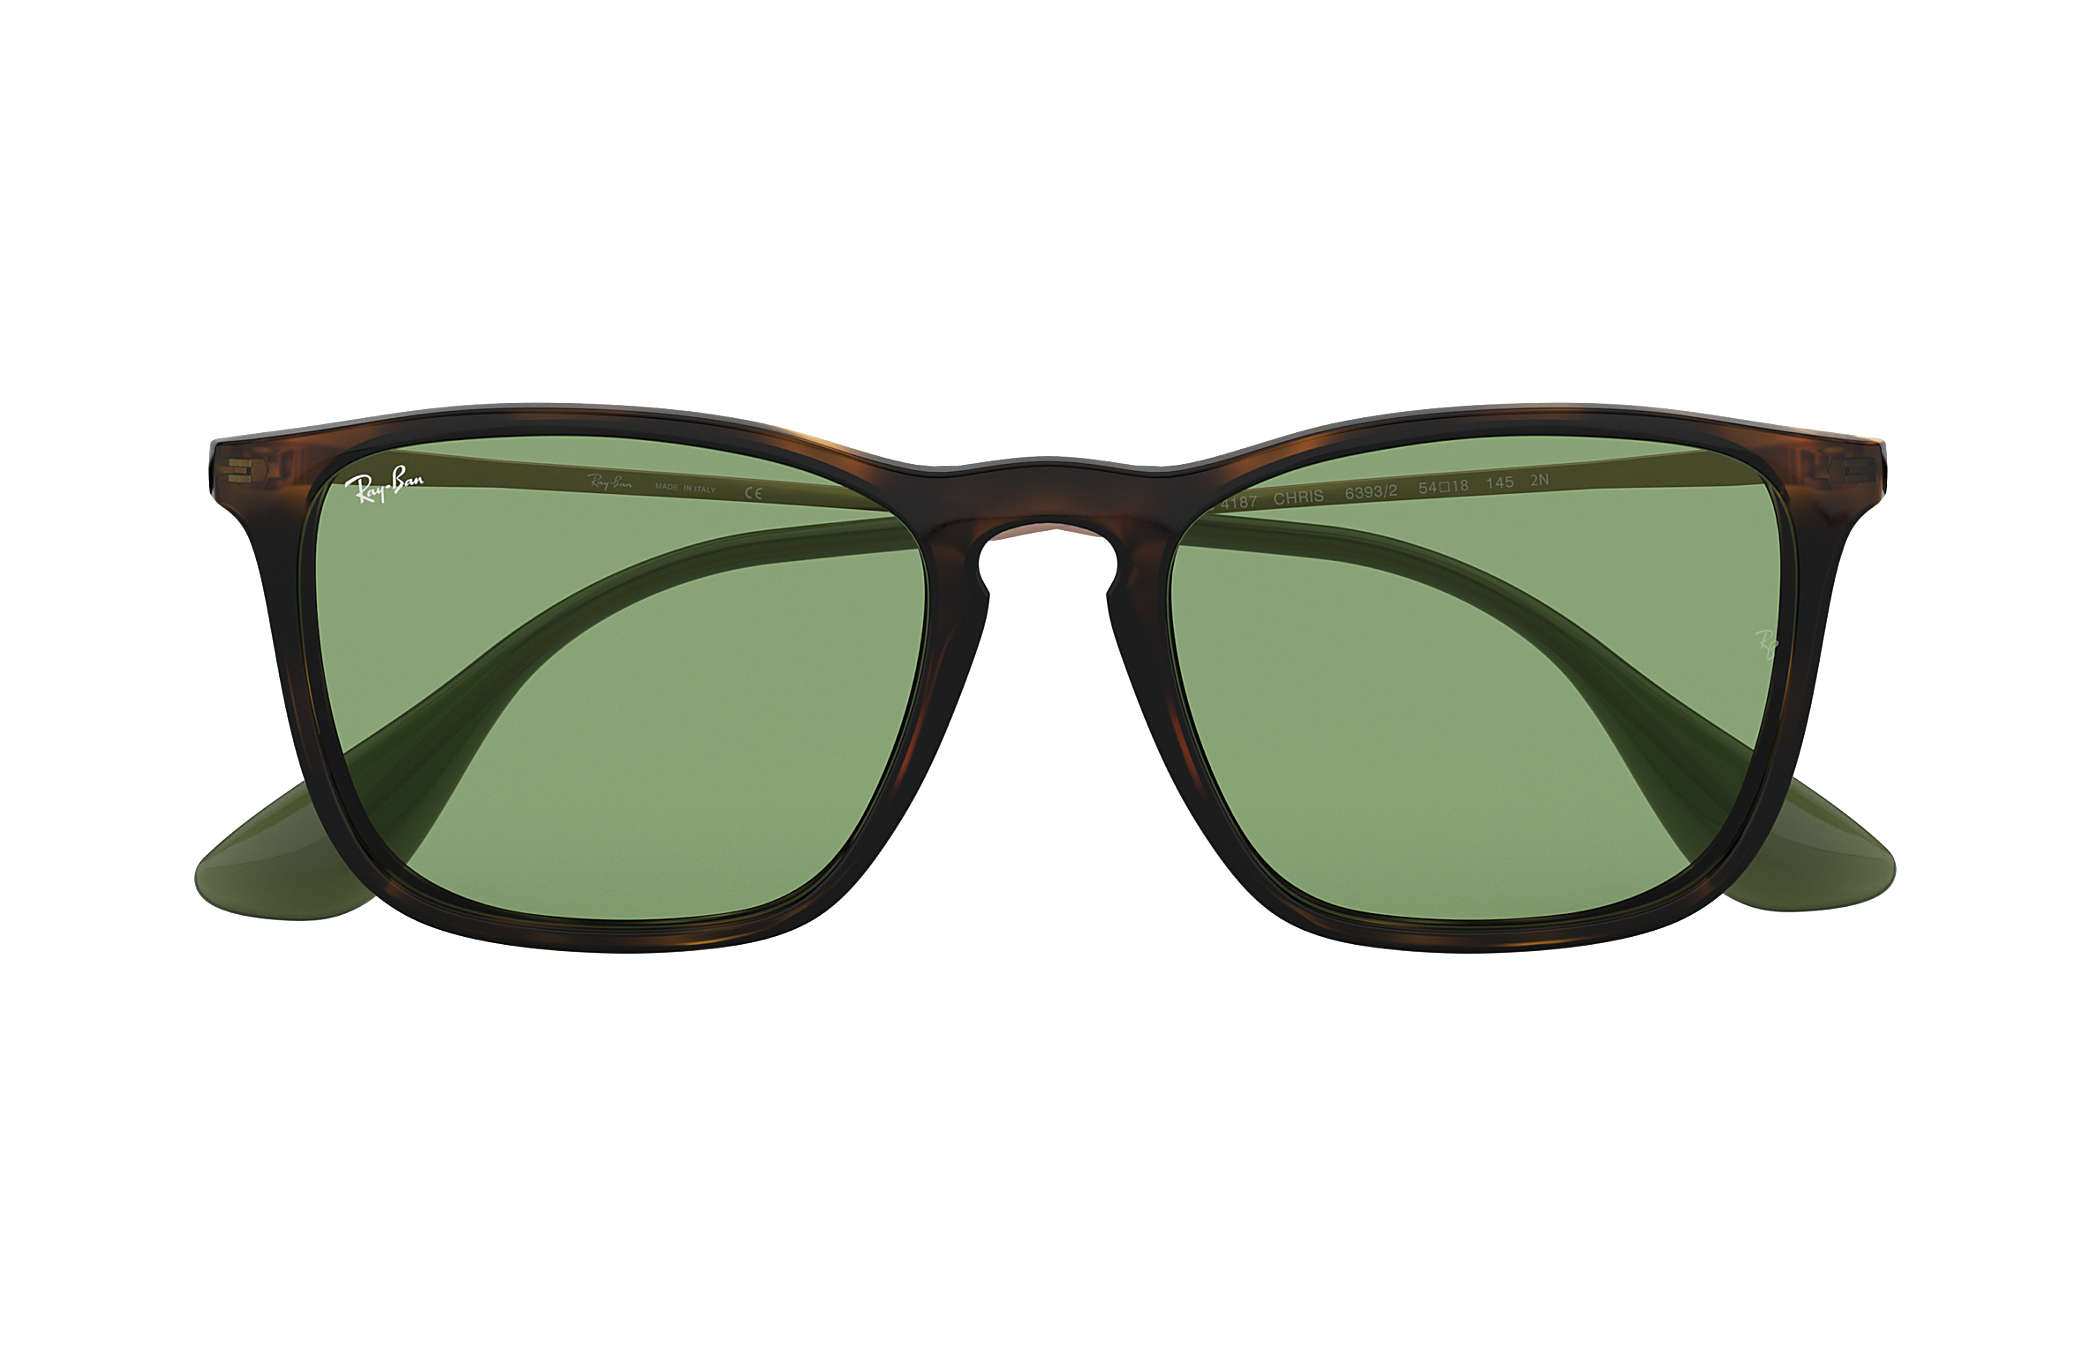 8f1362581f26 Ray-Ban Chris RB4187 Tortoise - Injected - Green Lenses ...